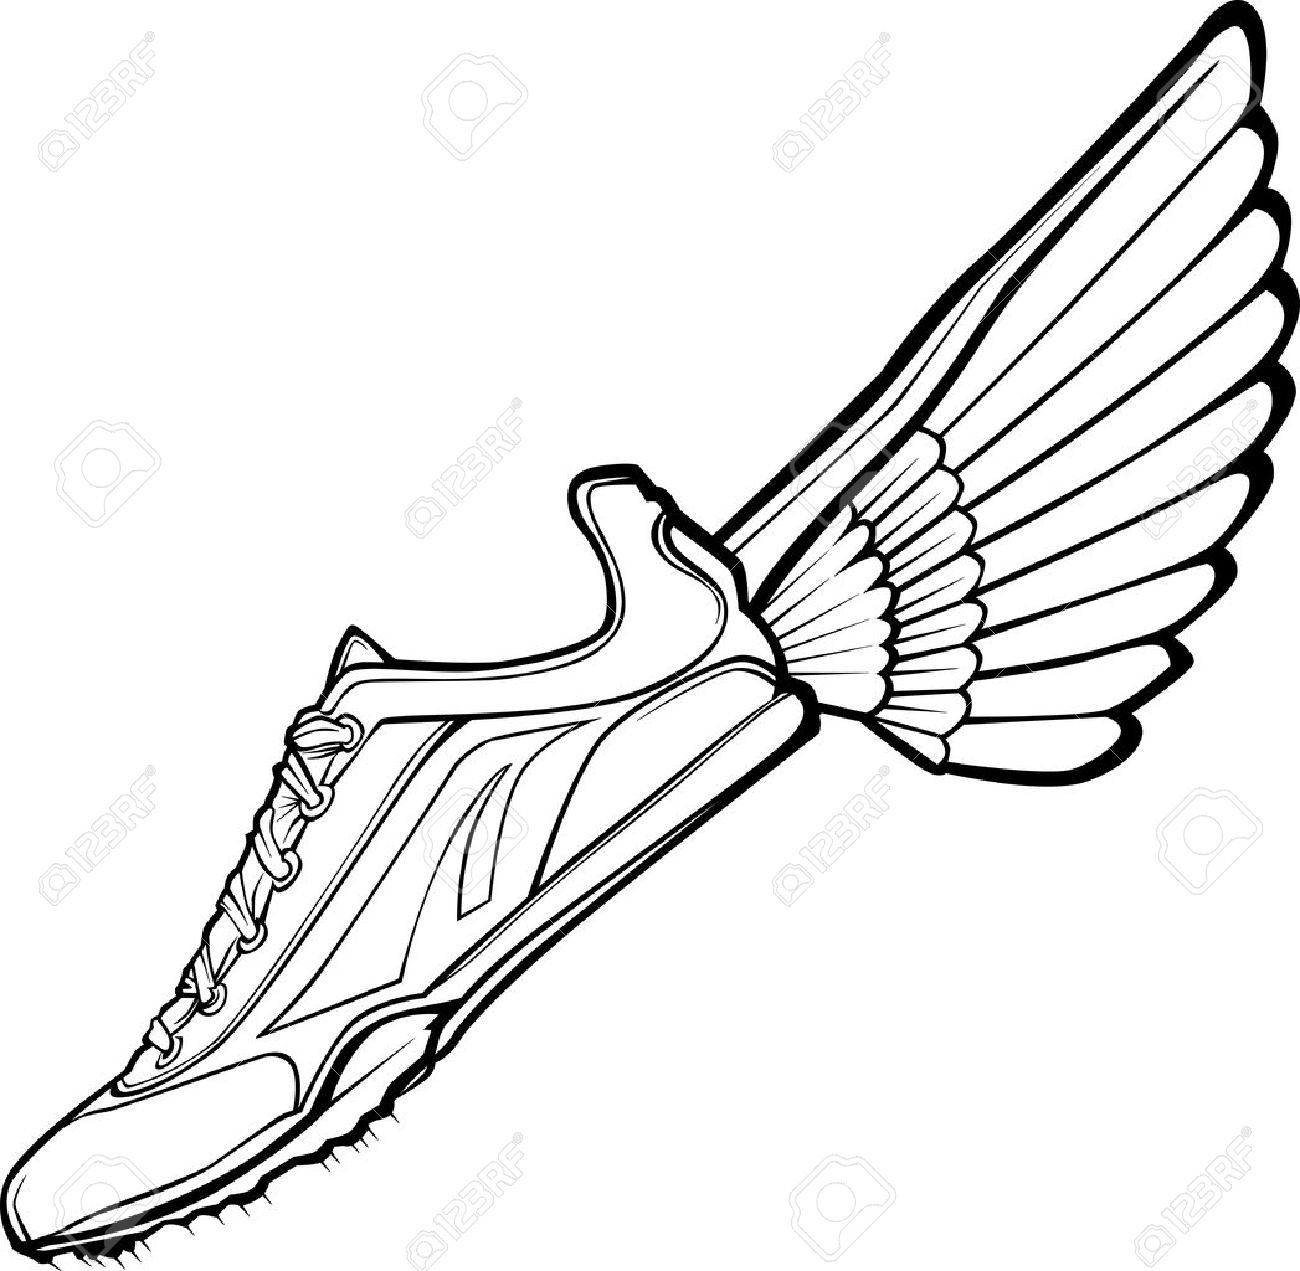 Track Shoe with Wing Illustration - 10419998